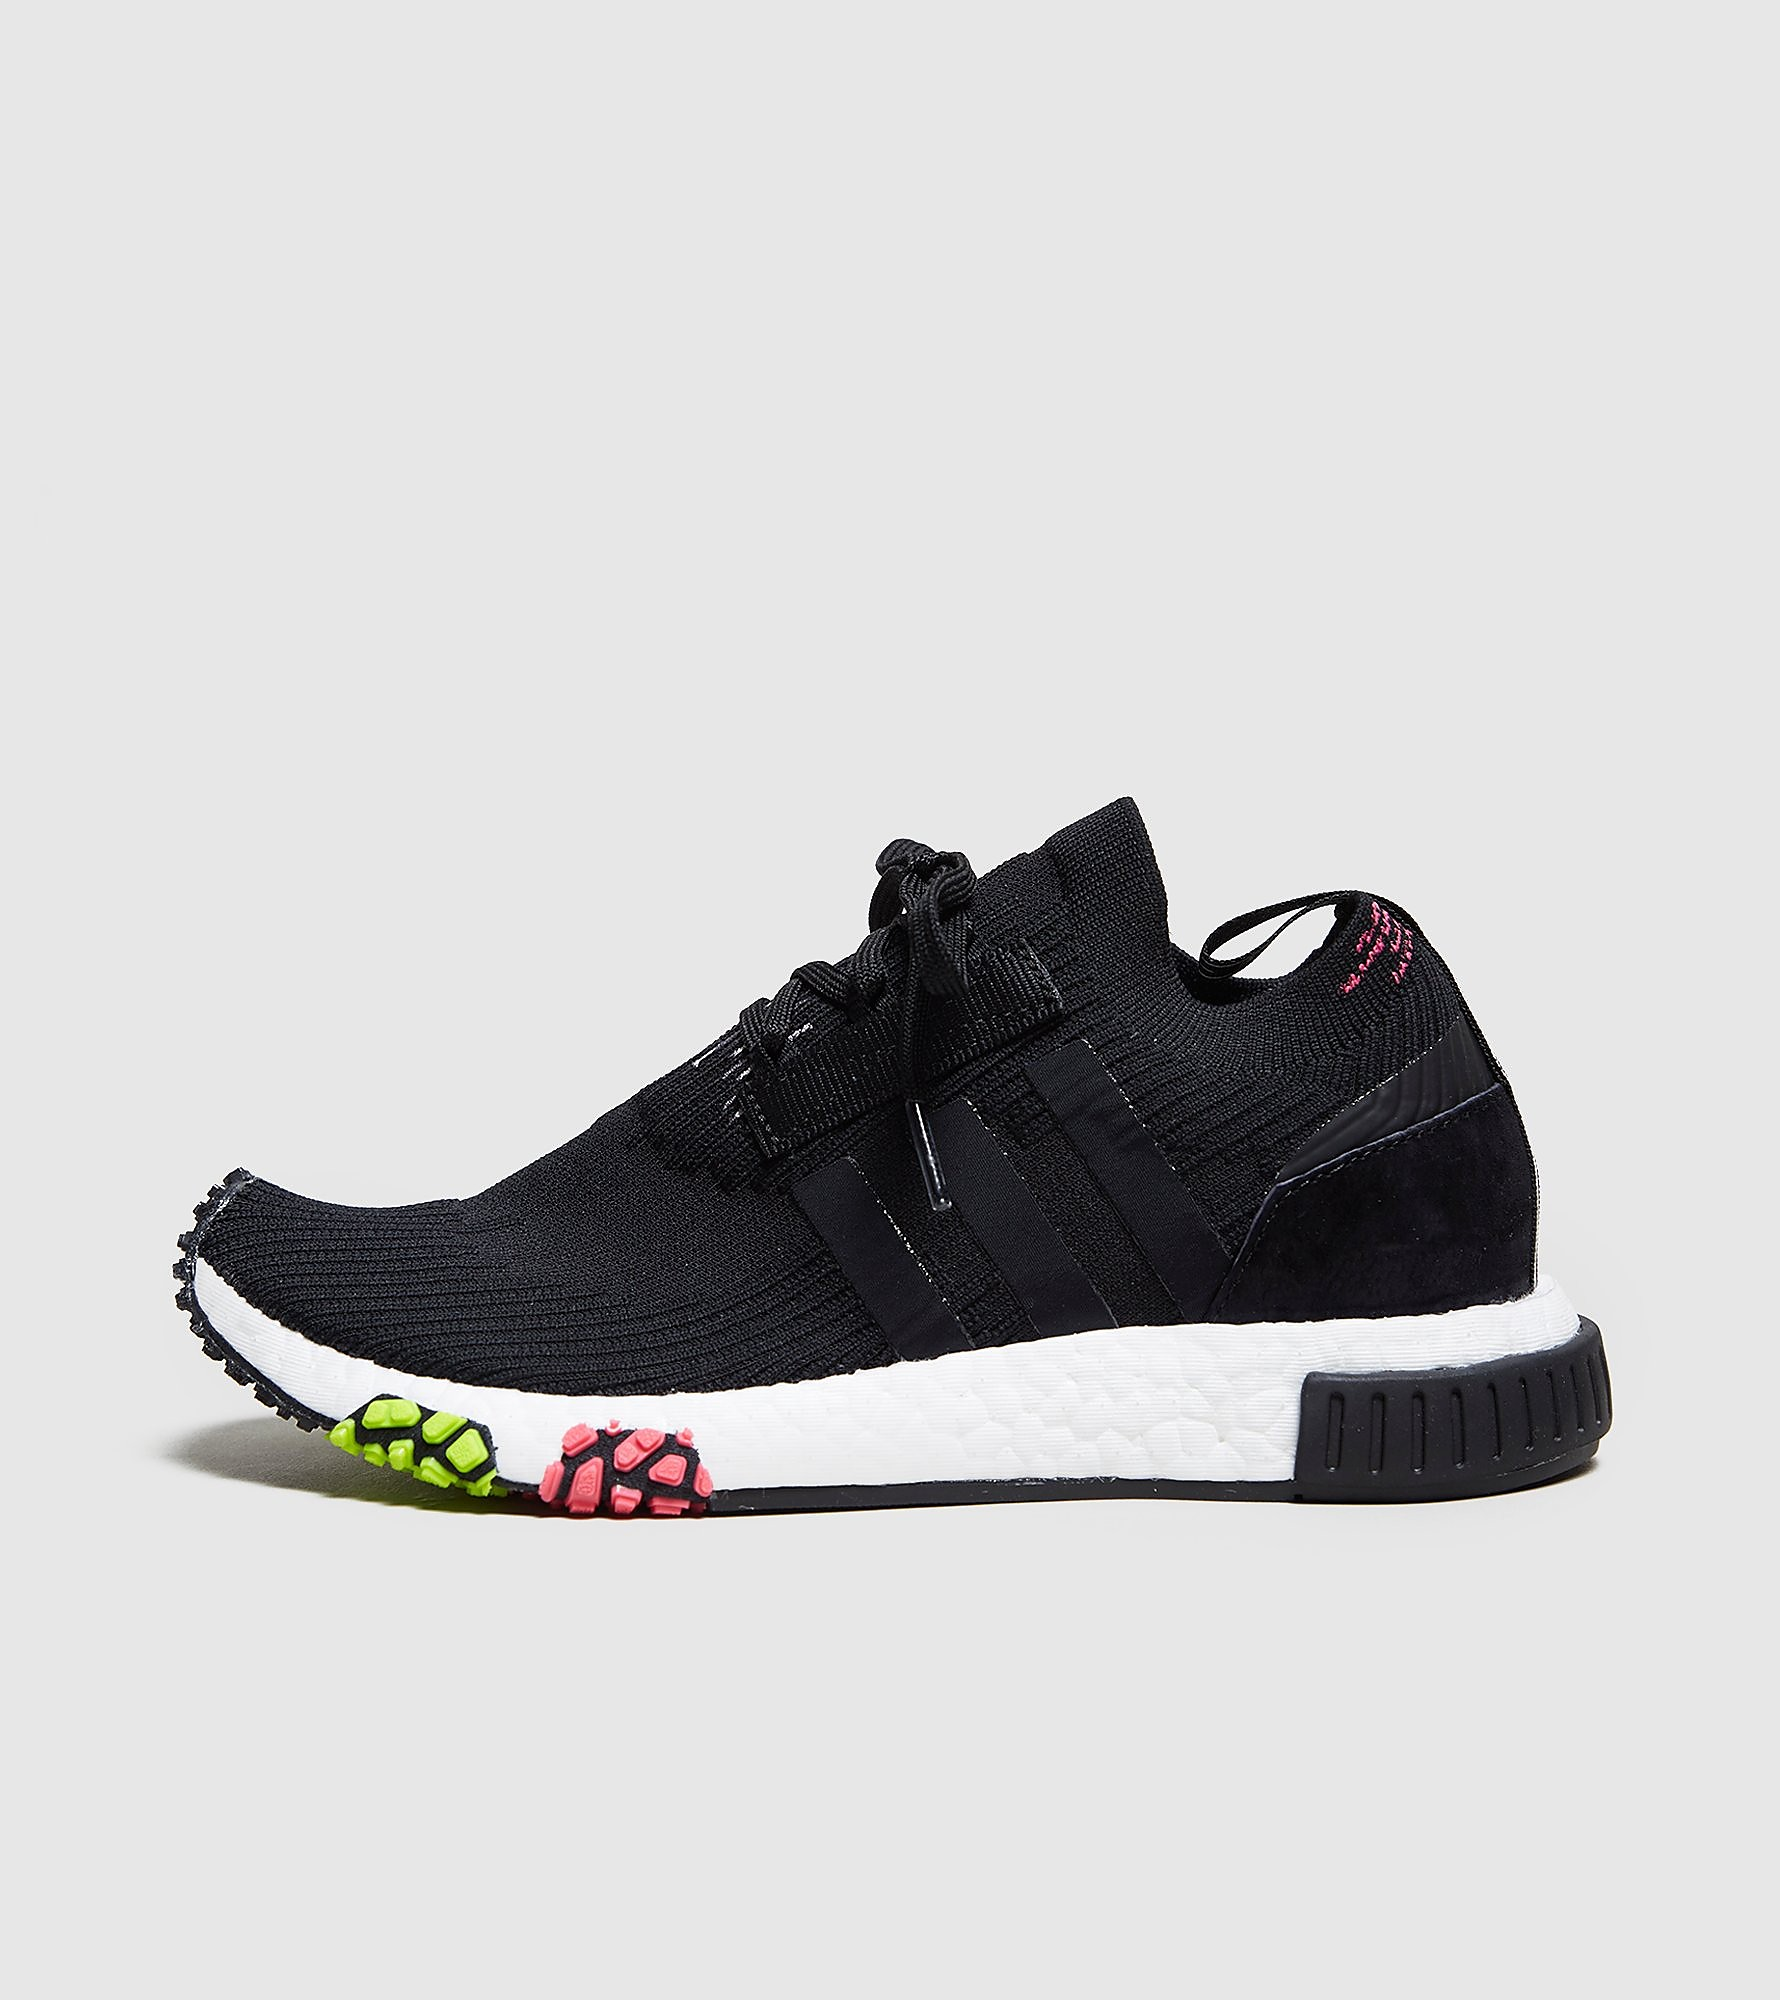 adidas Originals NMD Racer Women's